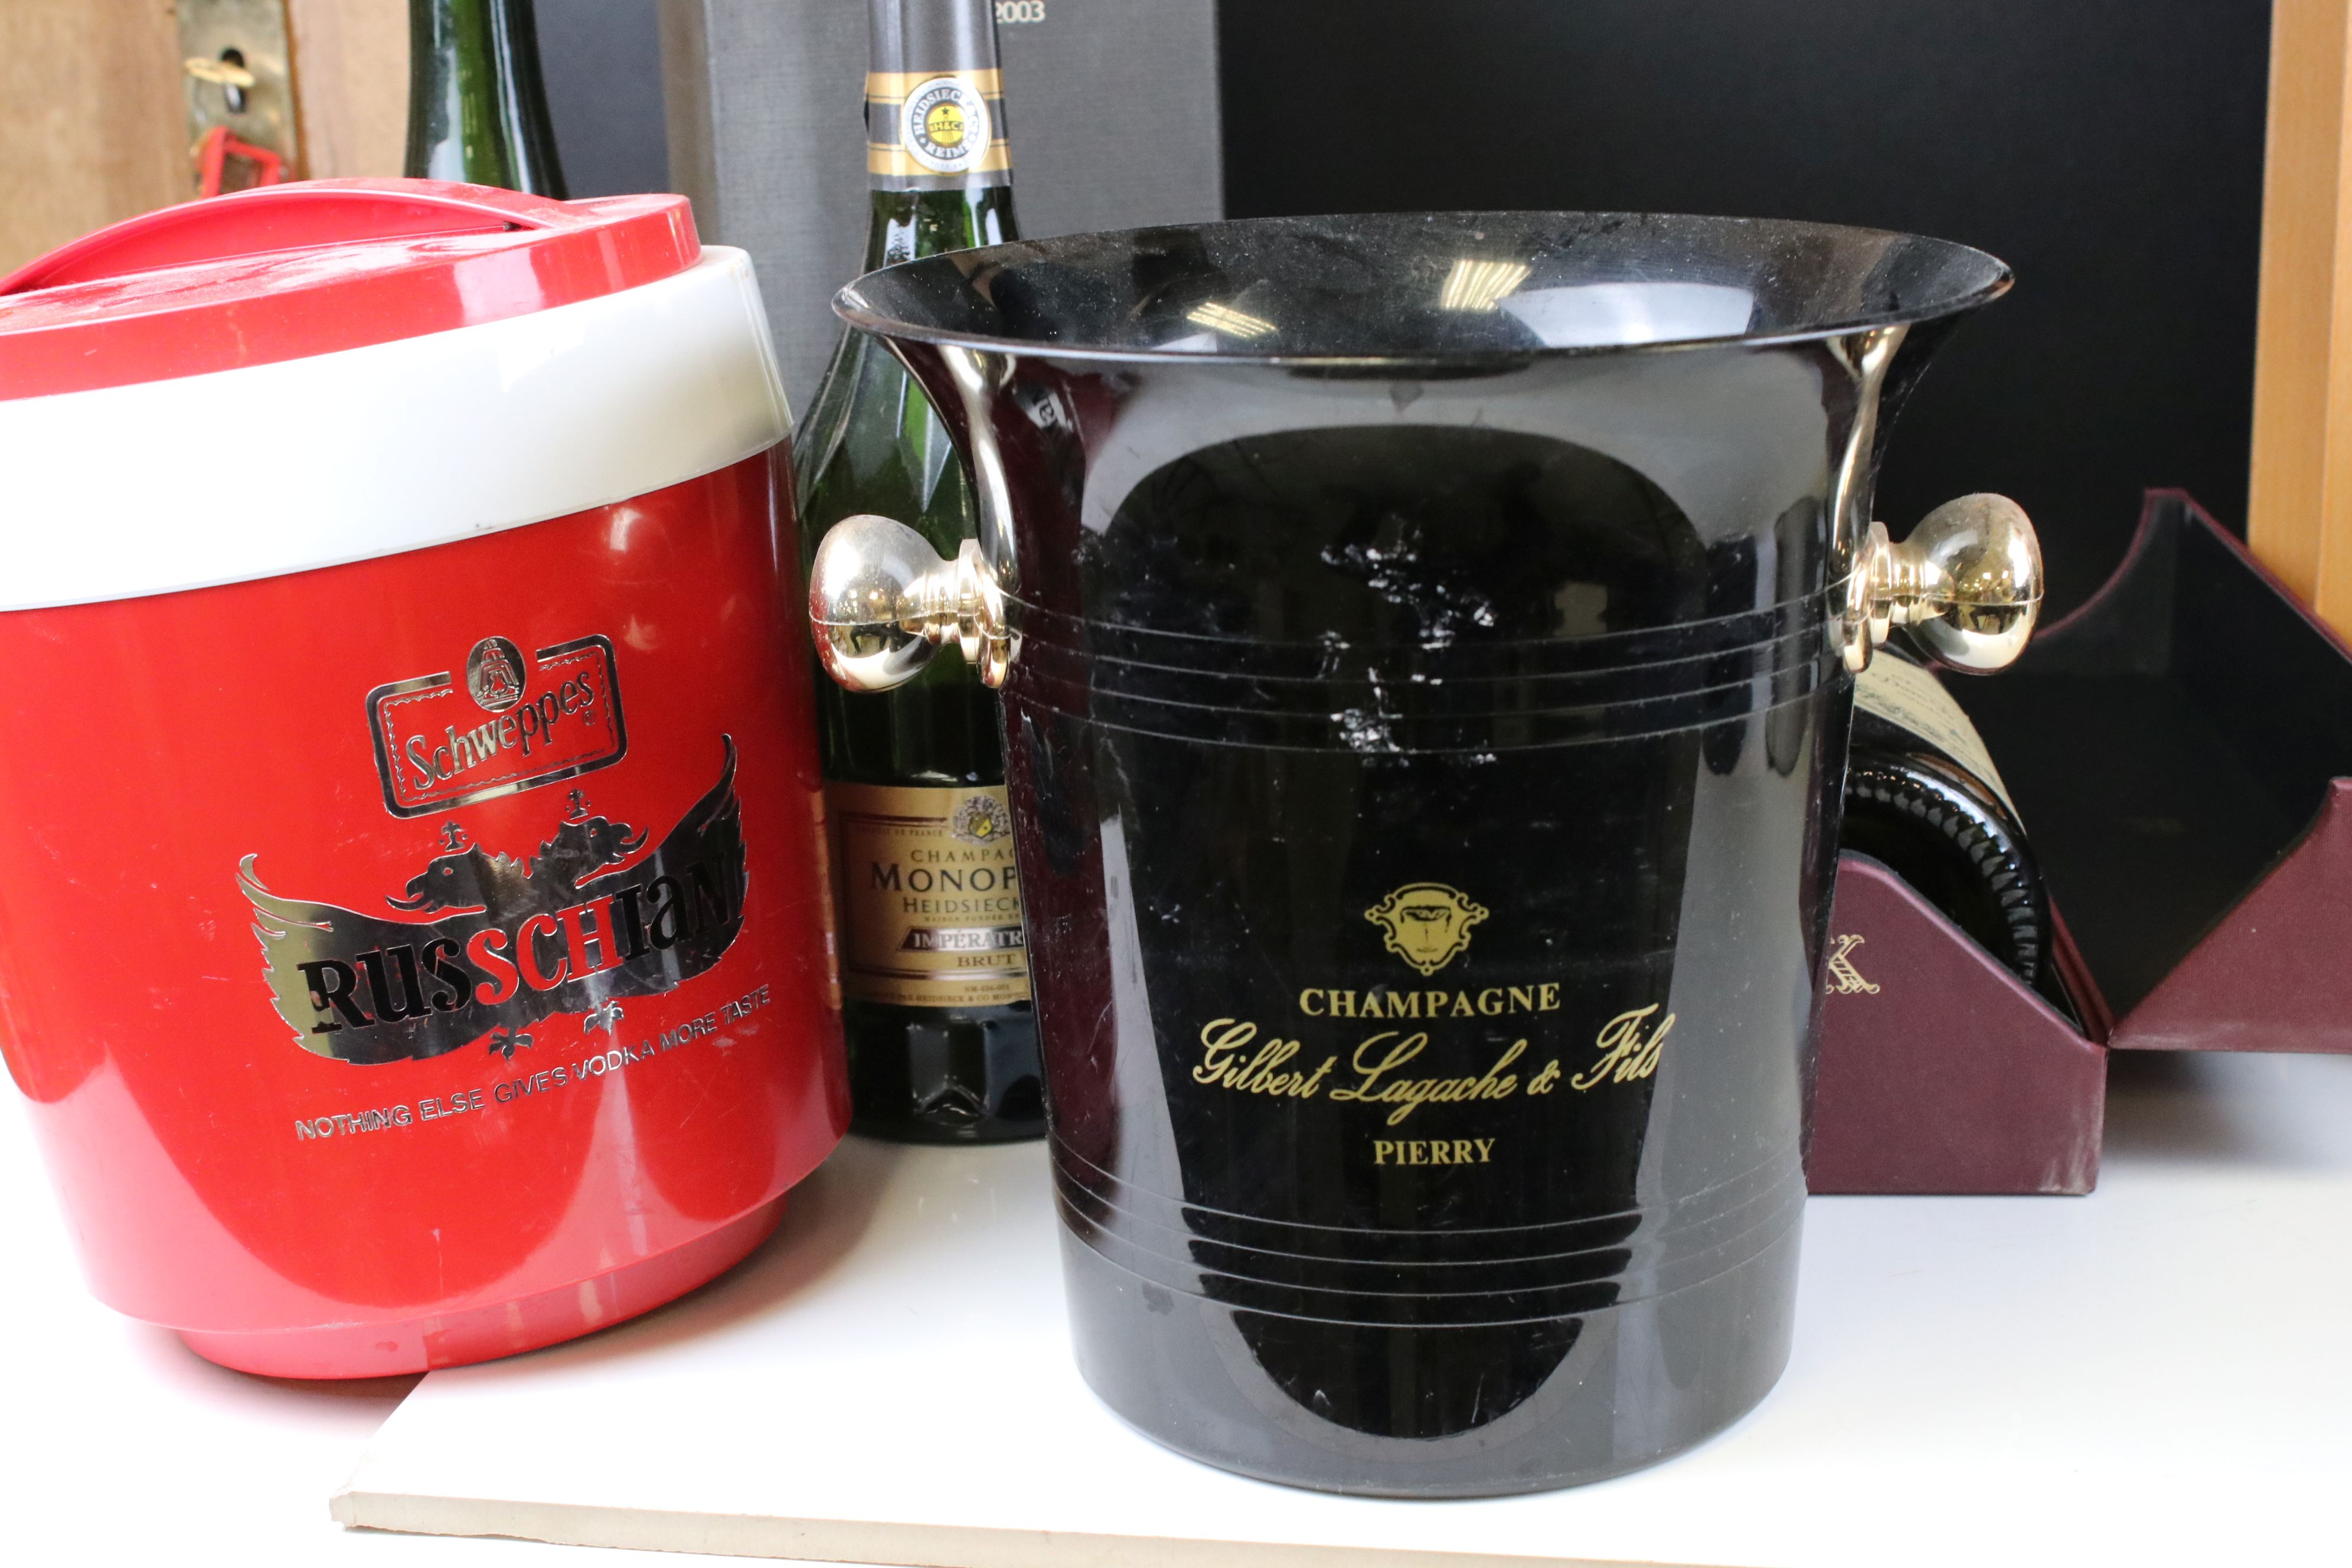 Moet & Chandon Top Hat Ice Bucket together with Five Further Ice Buckets, Moet & Chandon Glass - Image 2 of 8